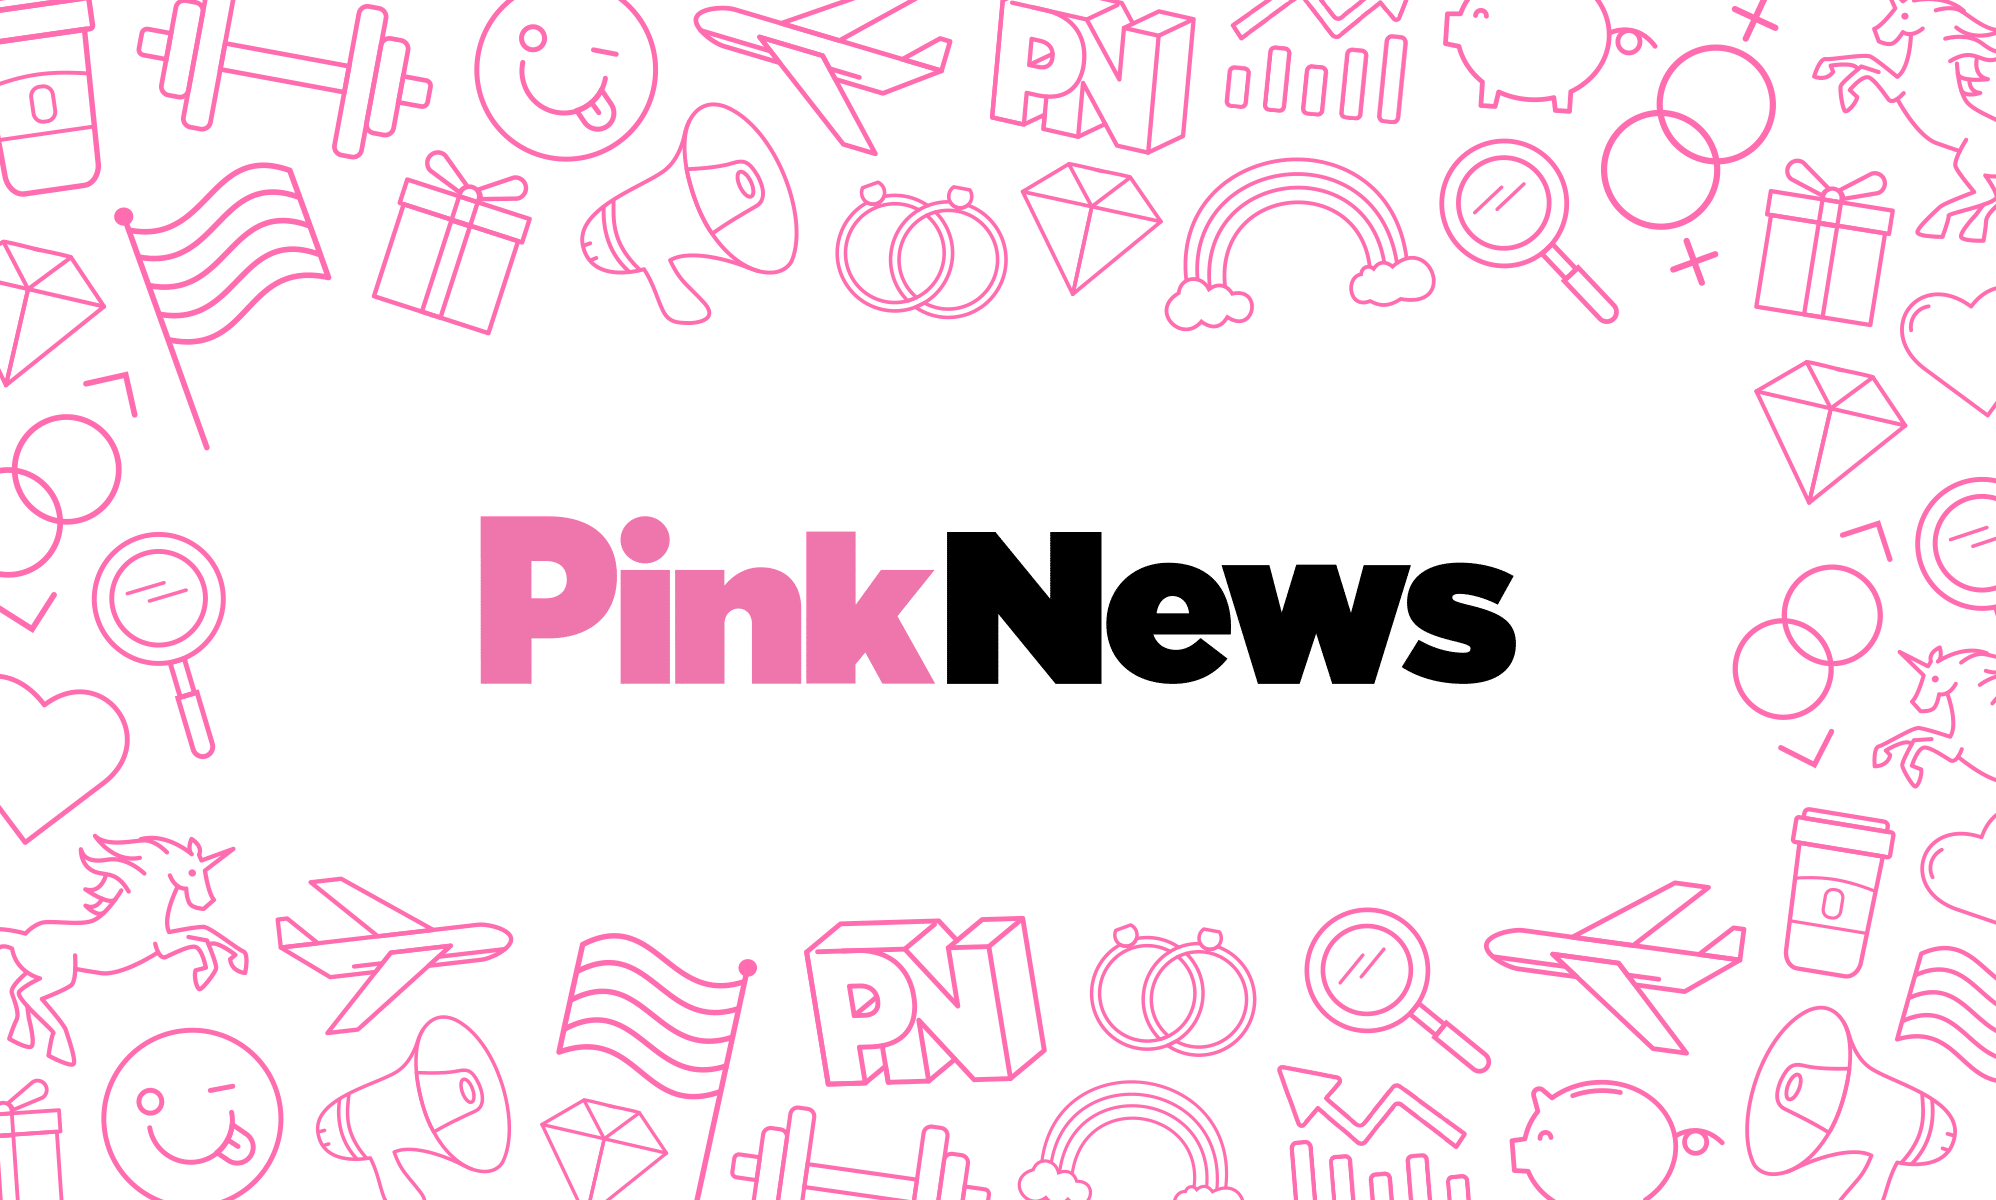 Labour's Yvette Cooper: PinkNews Debate will be an important chance to discuss issues